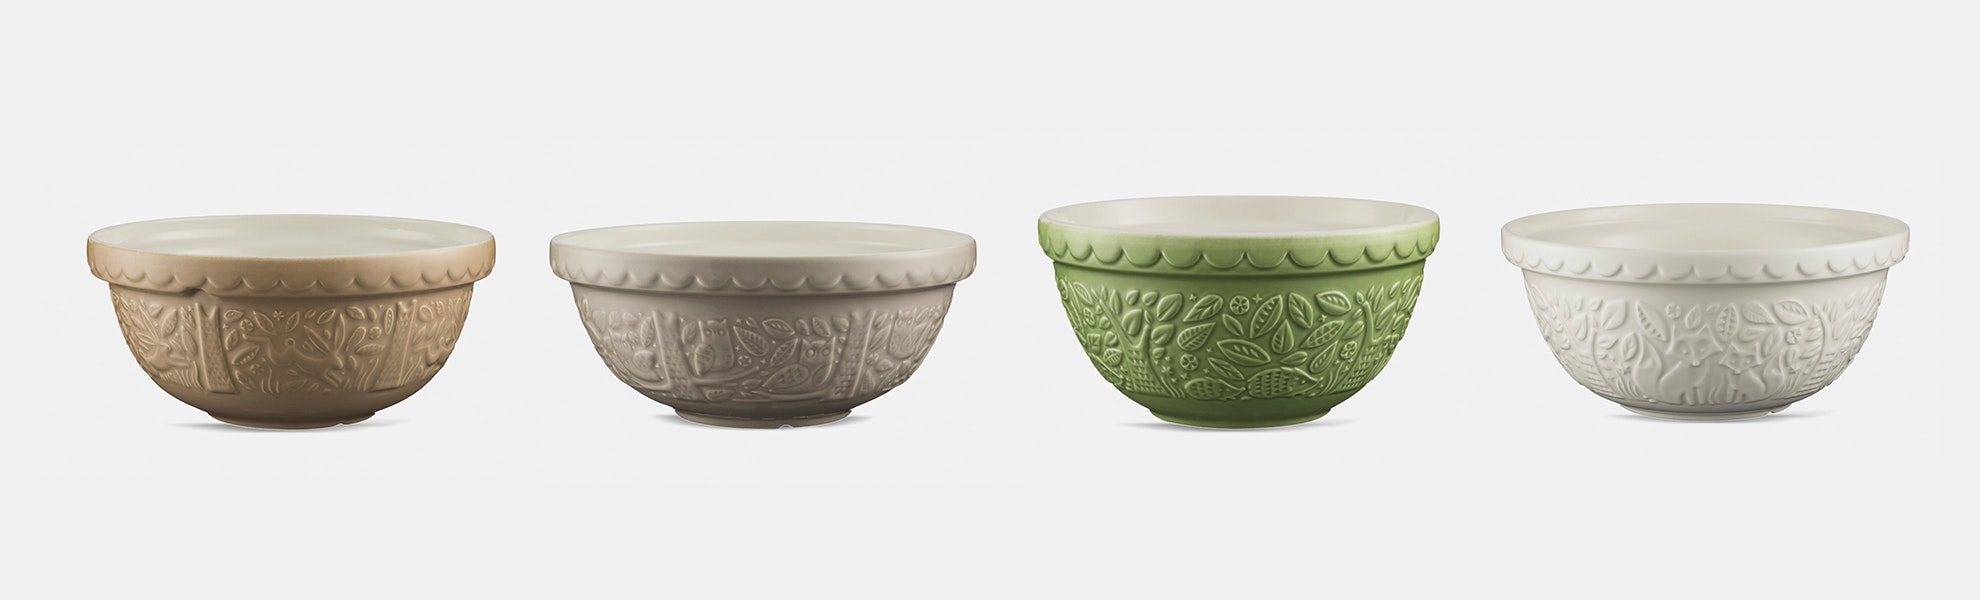 "Mason Cash ""In the Forest"" Mixing Bowls"